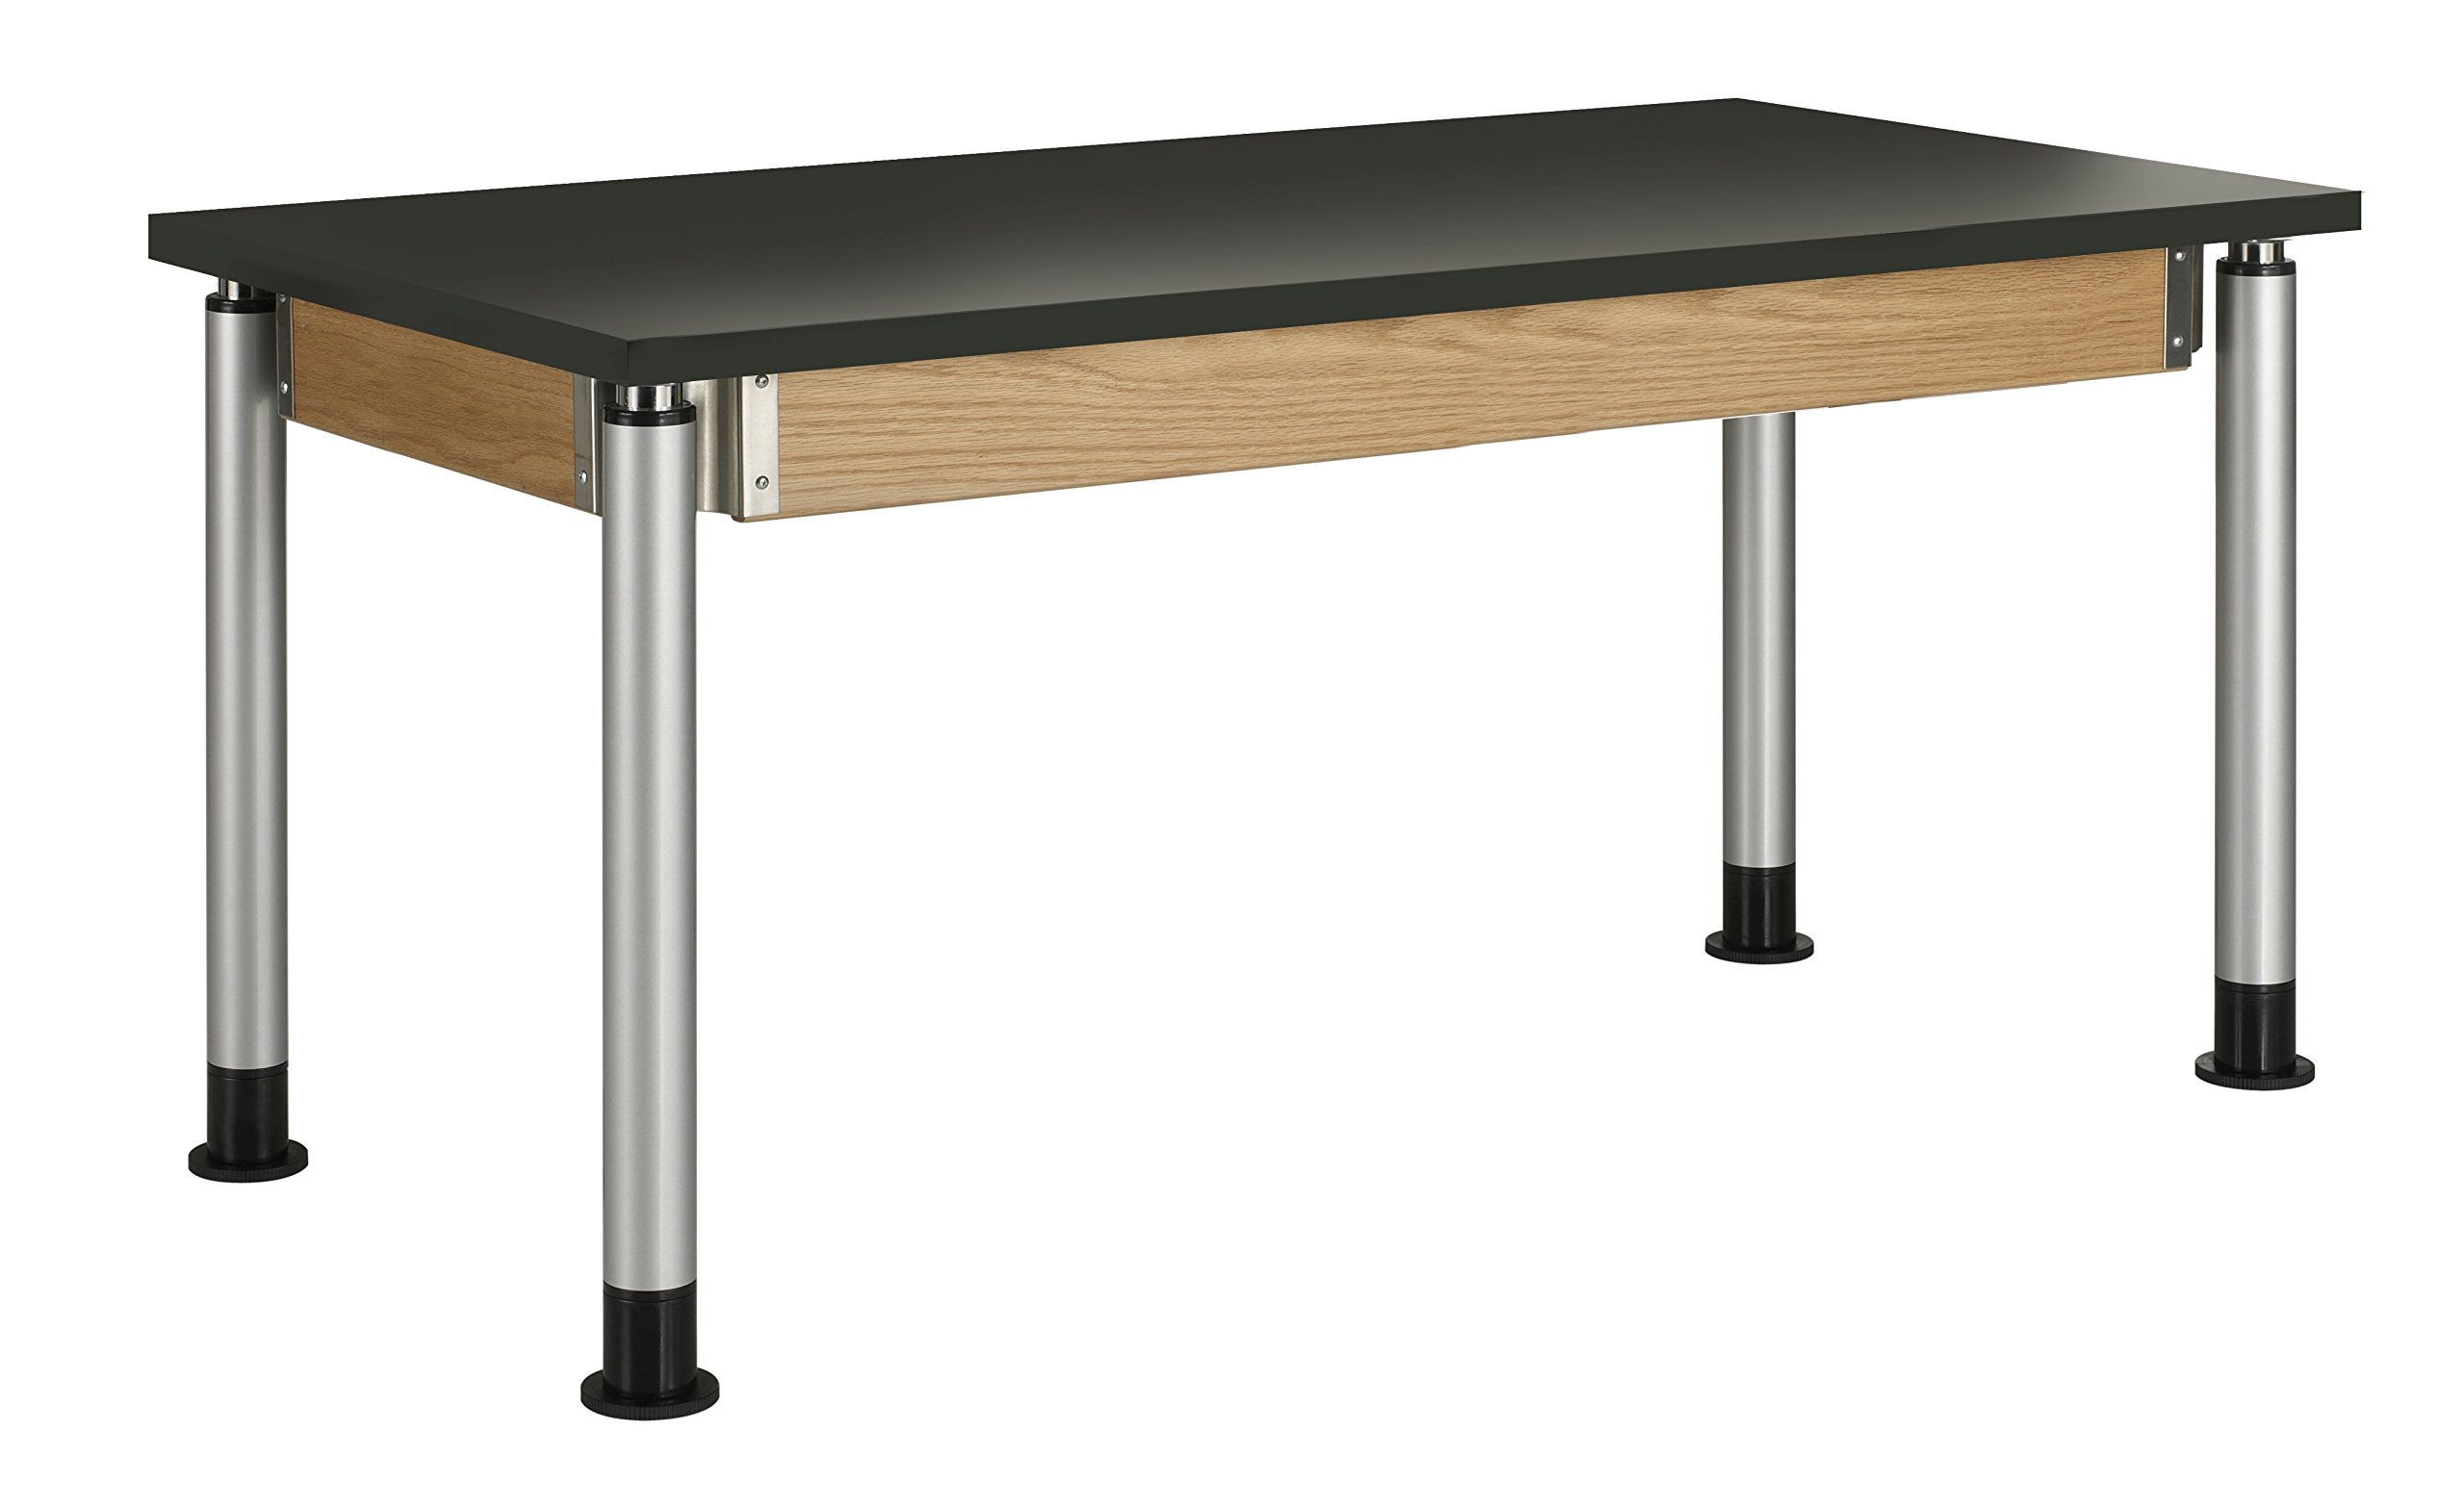 Diversified Woodcraft P8142K UV Finish Plain Adjustable Height Table with Chemguard Top, 60'' Width x 39'' Height x 30'' Depth